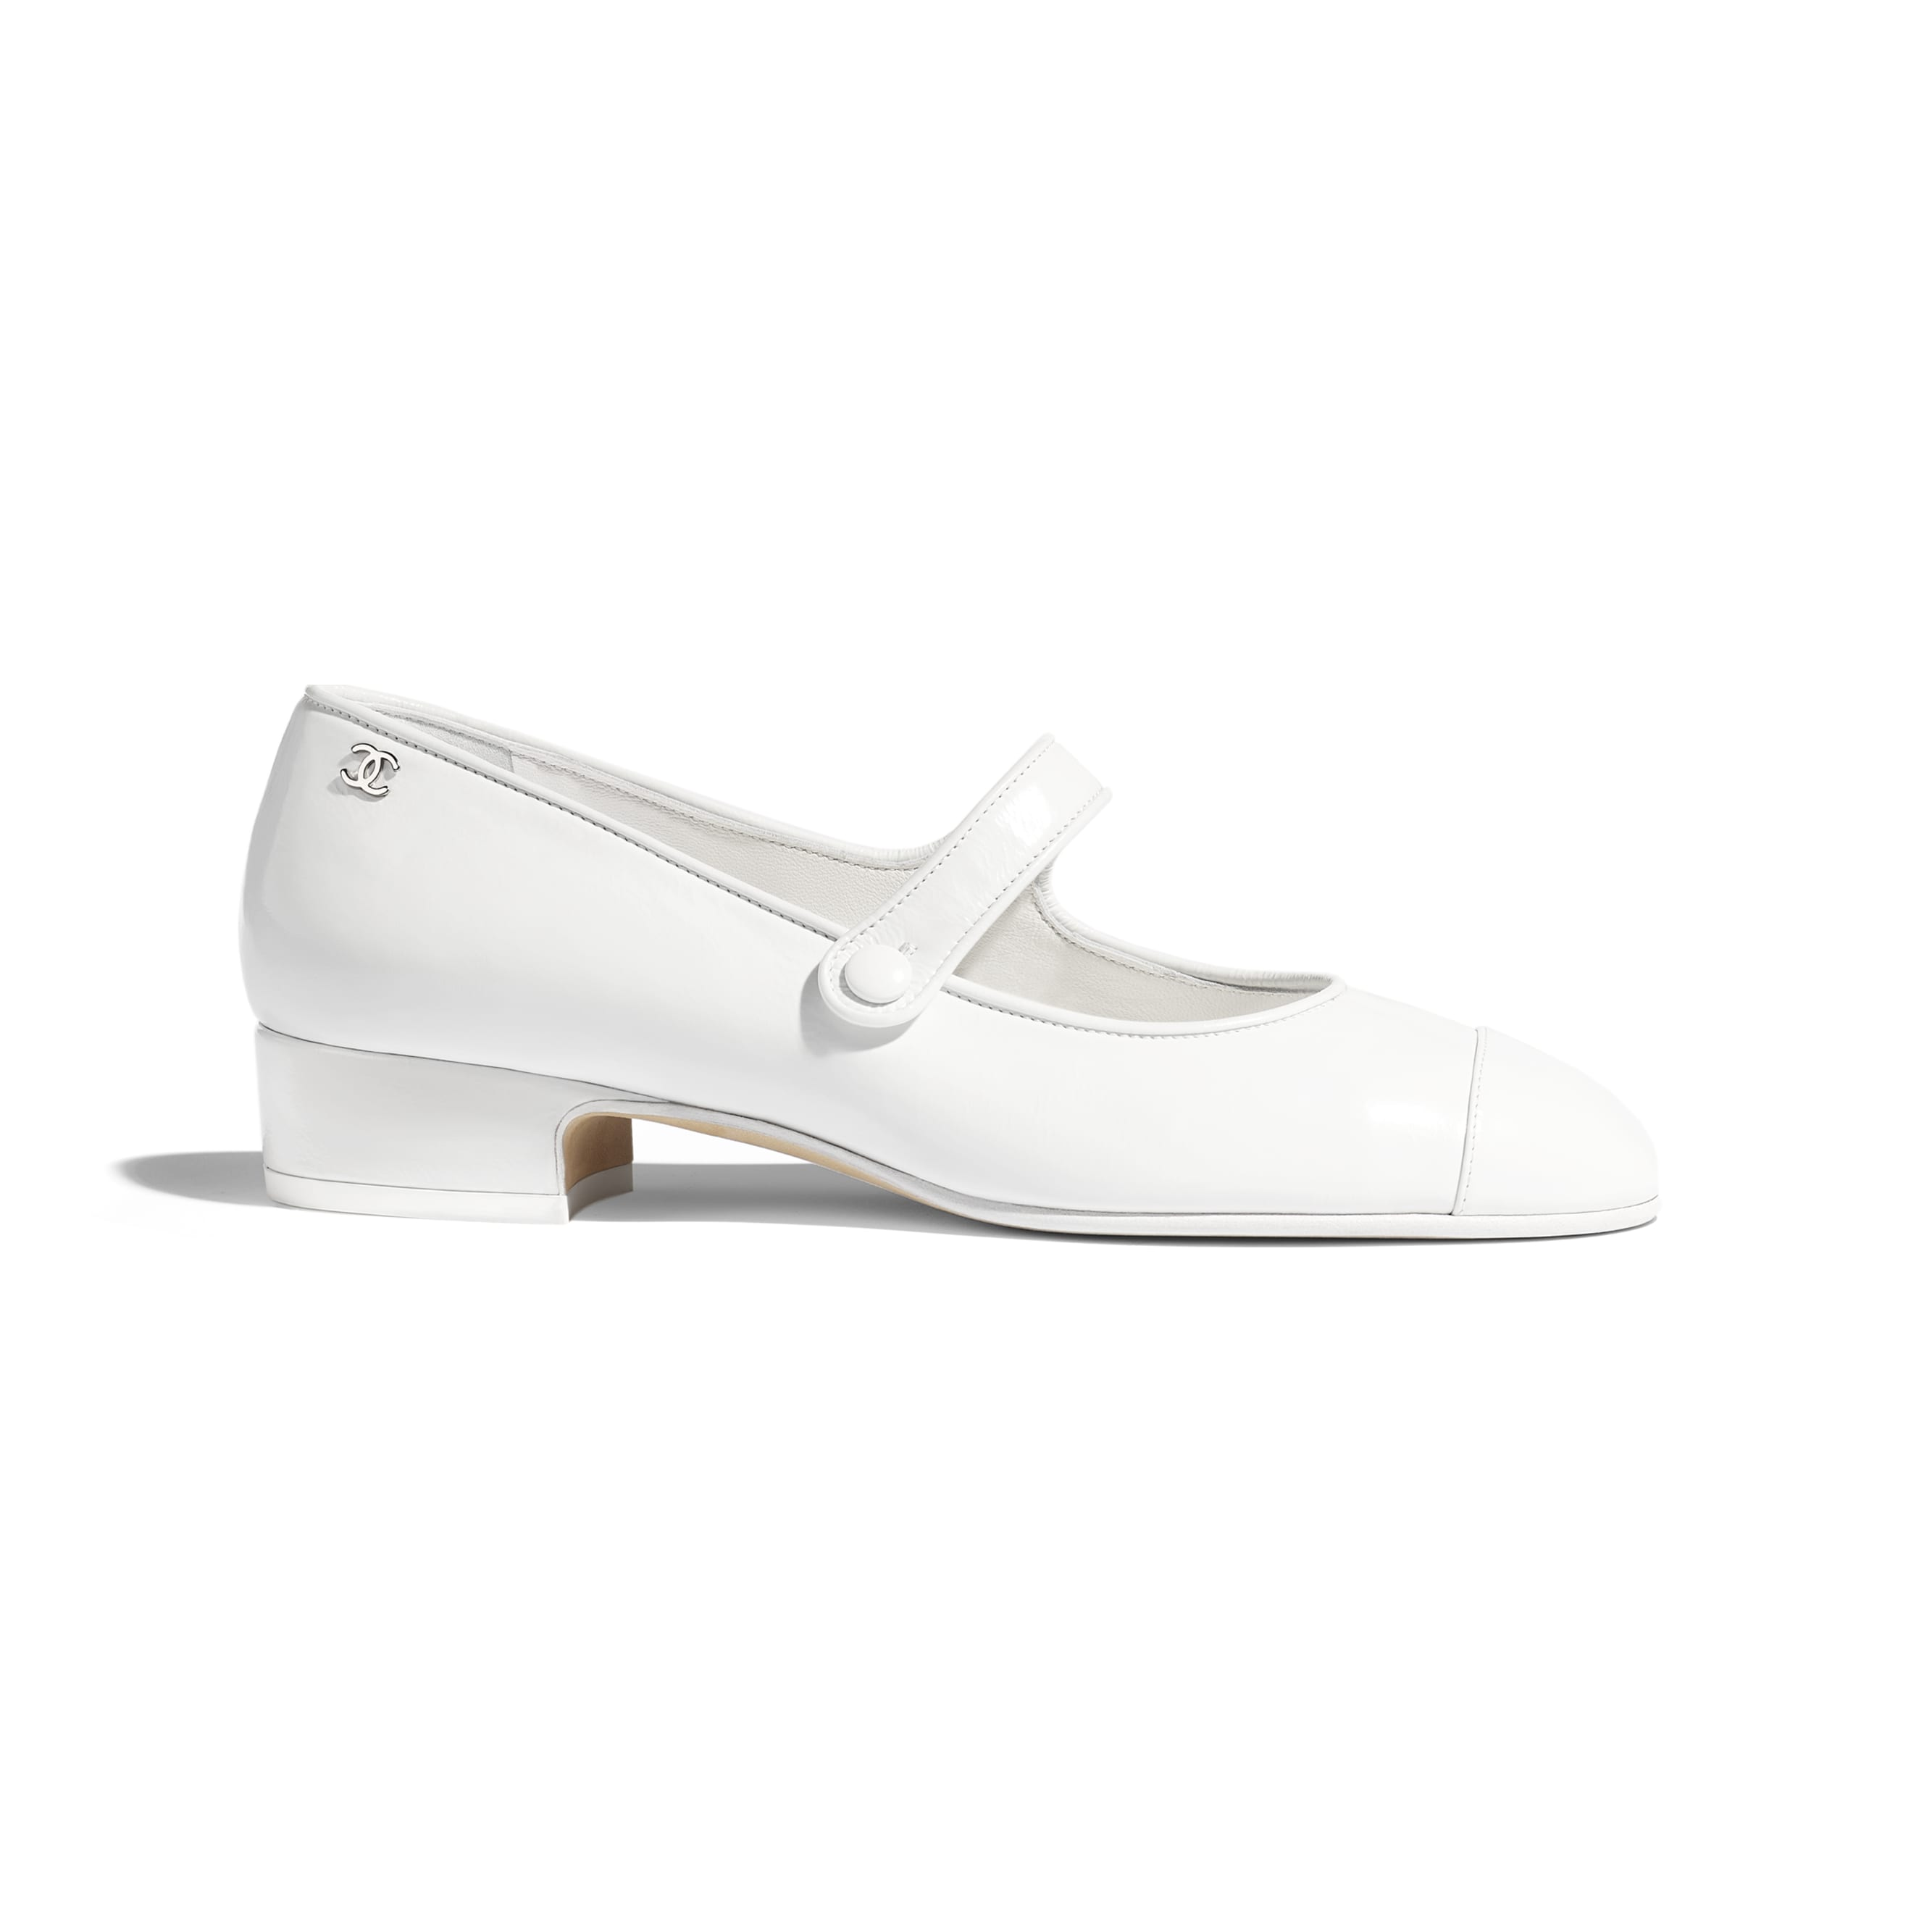 Mary Janes - White - Calfskin - Default view - see standard sized version